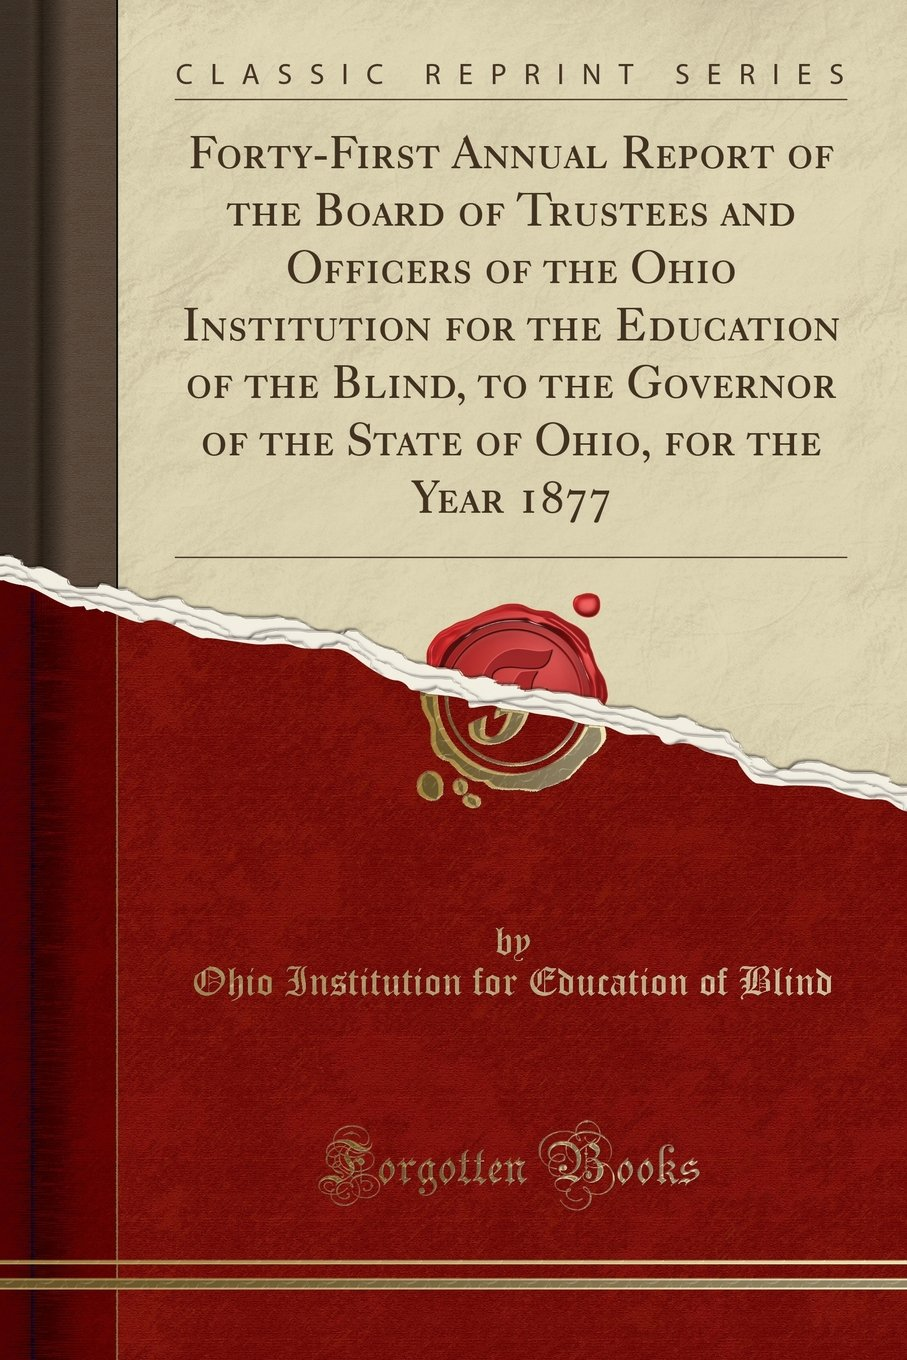 Forty-First Annual Report of the Board of Trustees and Officers of the Ohio Institution for the Education of the Blind, to the Governor of the State of Ohio, for the Year 1877 (Classic Reprint) pdf epub